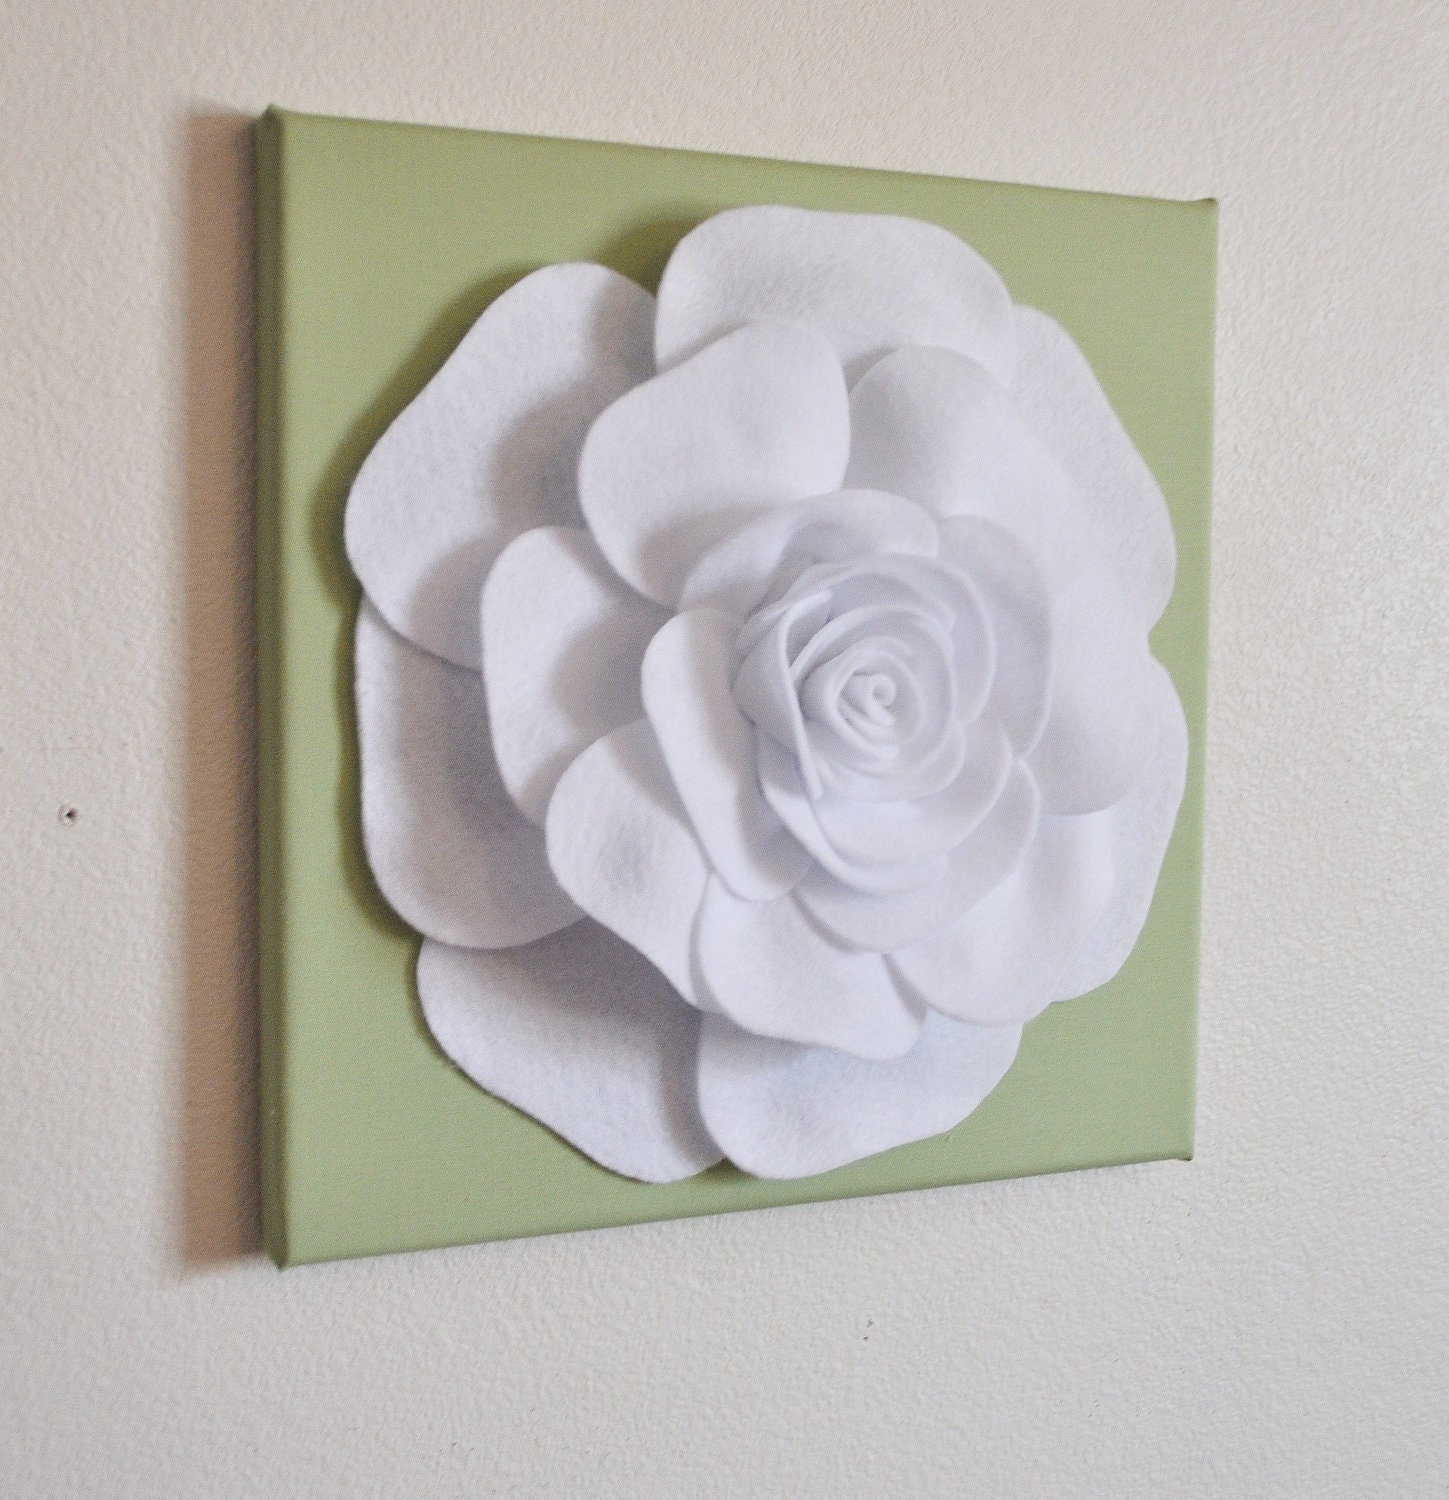 Rose Wall Decor White Rose On Sage Green 12 X12 Canvas